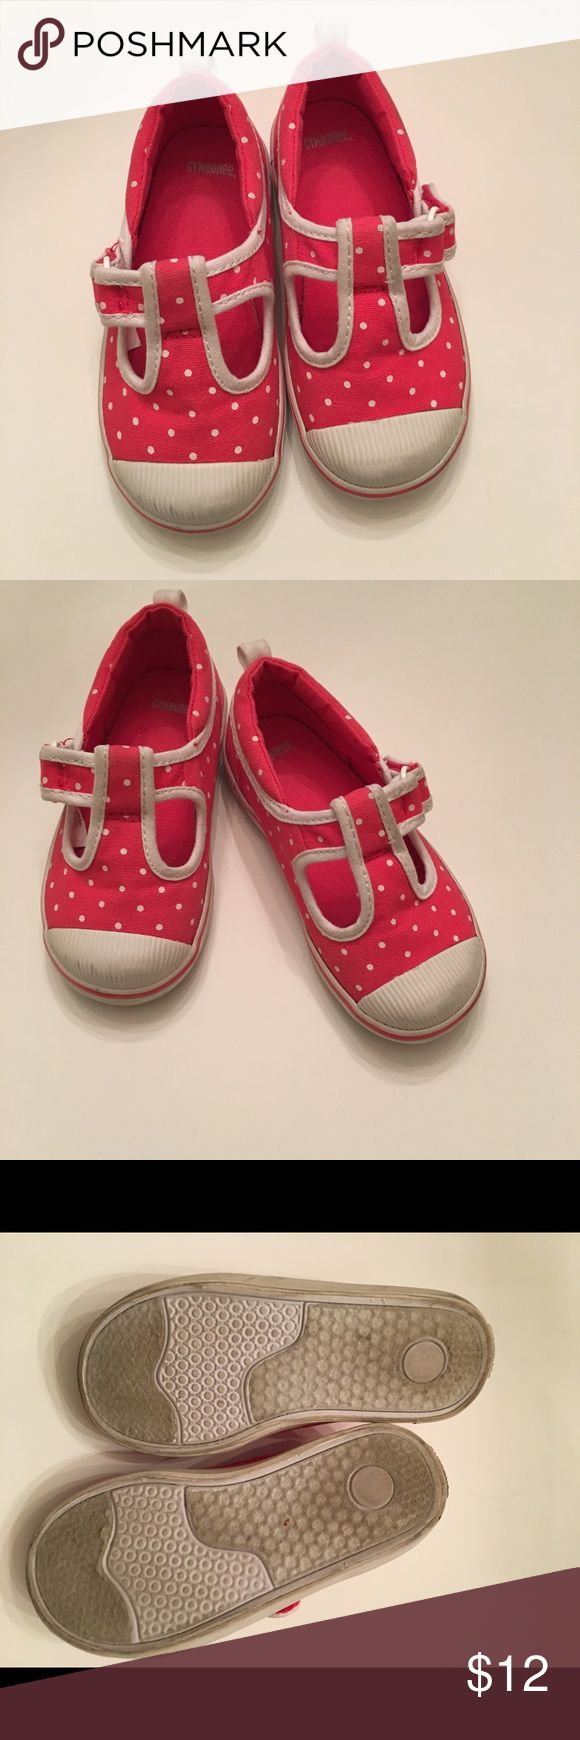 Gymboree toddler shoes Super cute Gymboree toddler shoes. These shoes are great for the first day of school. They are in good condition. The front of the shoe has a little bit of black marks. The shoes are a toddler size 8. I am willing to accept offers. Gymboree Shoes Sneakers